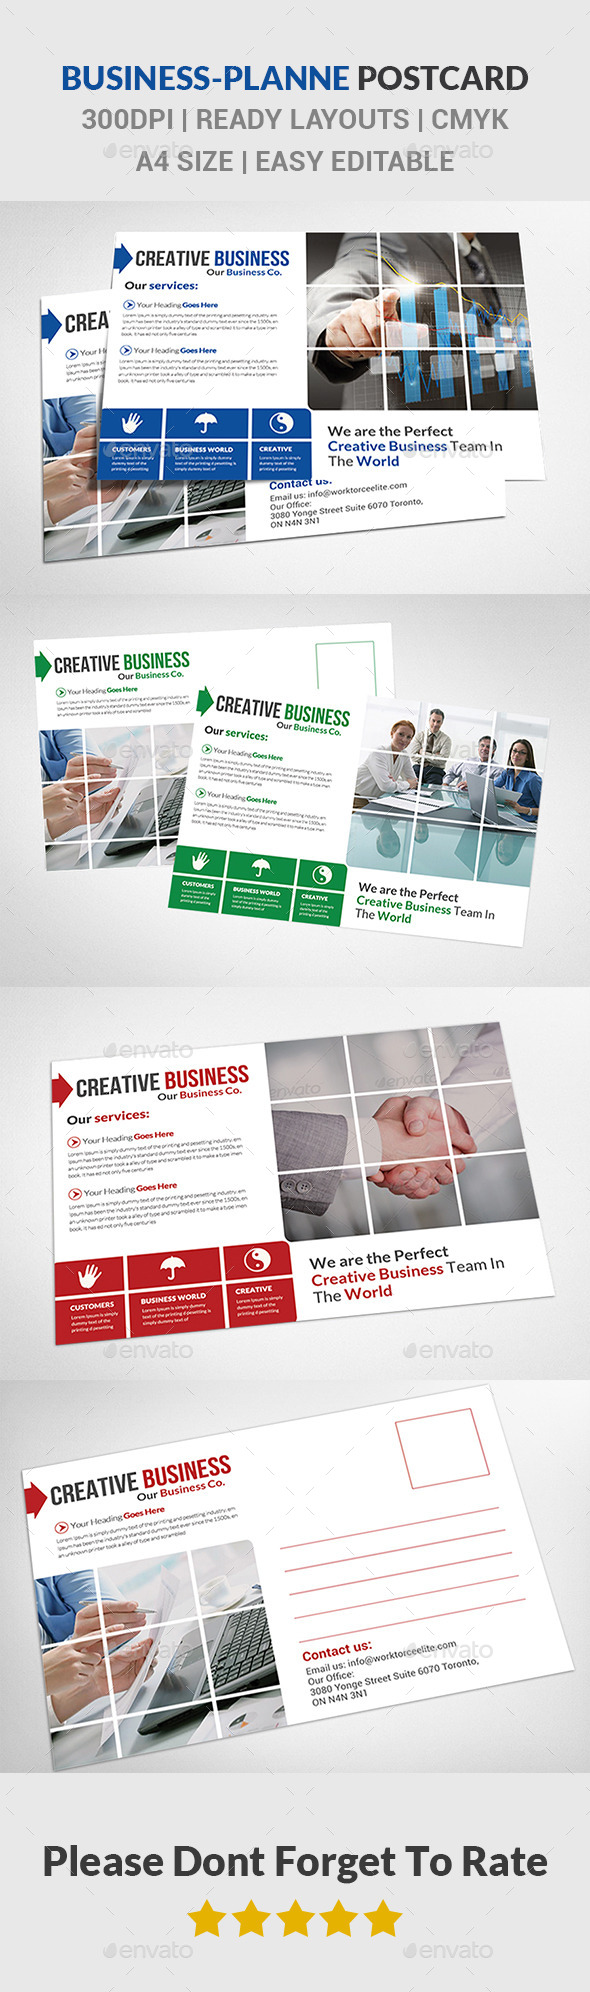 Corporate Business Postcards  - Cards & Invites Print Templates